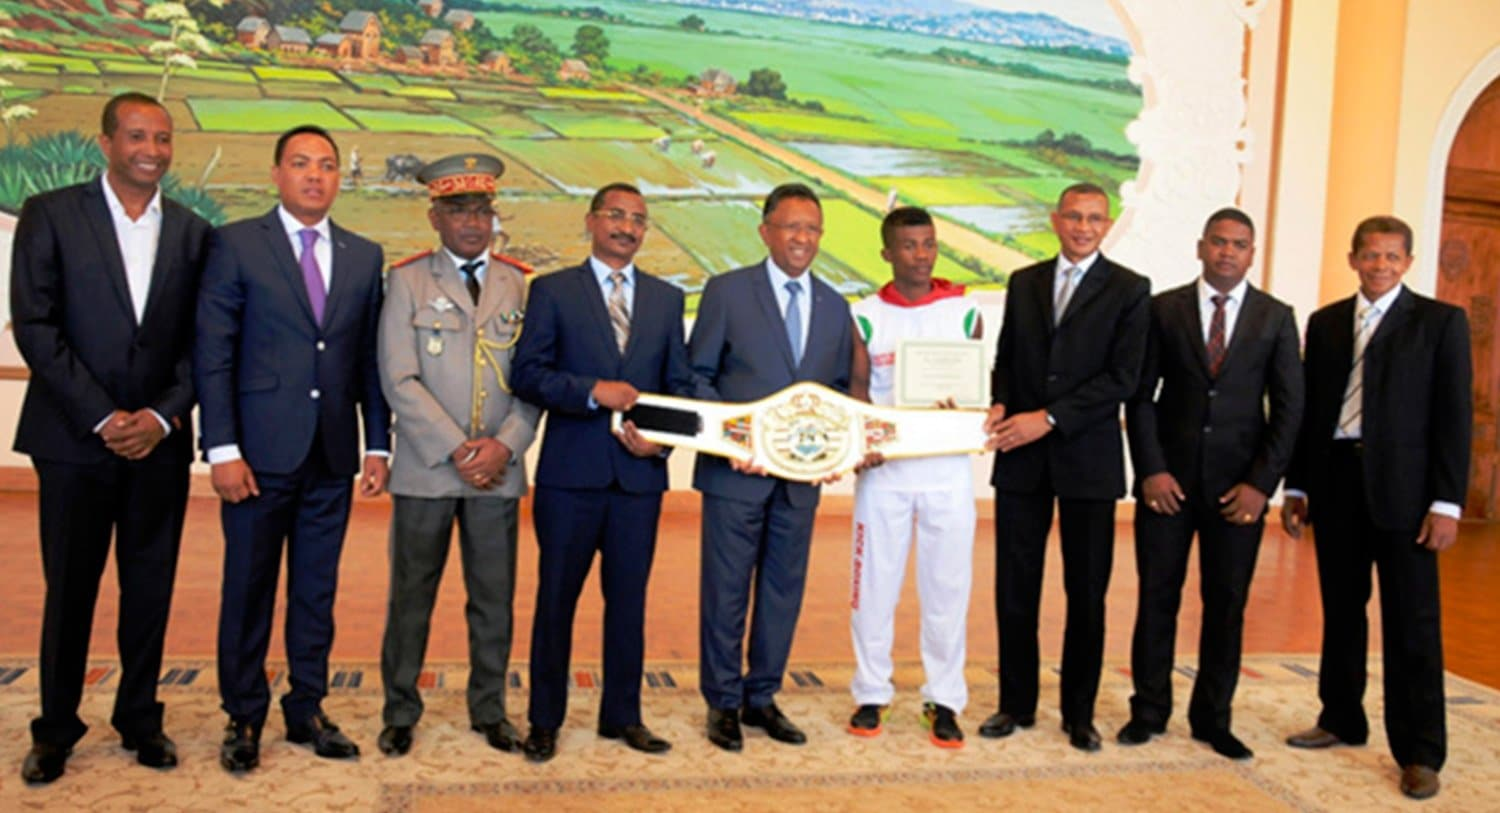 ARTICLE-Séverin Mamonjisoa, world kickboxing champion